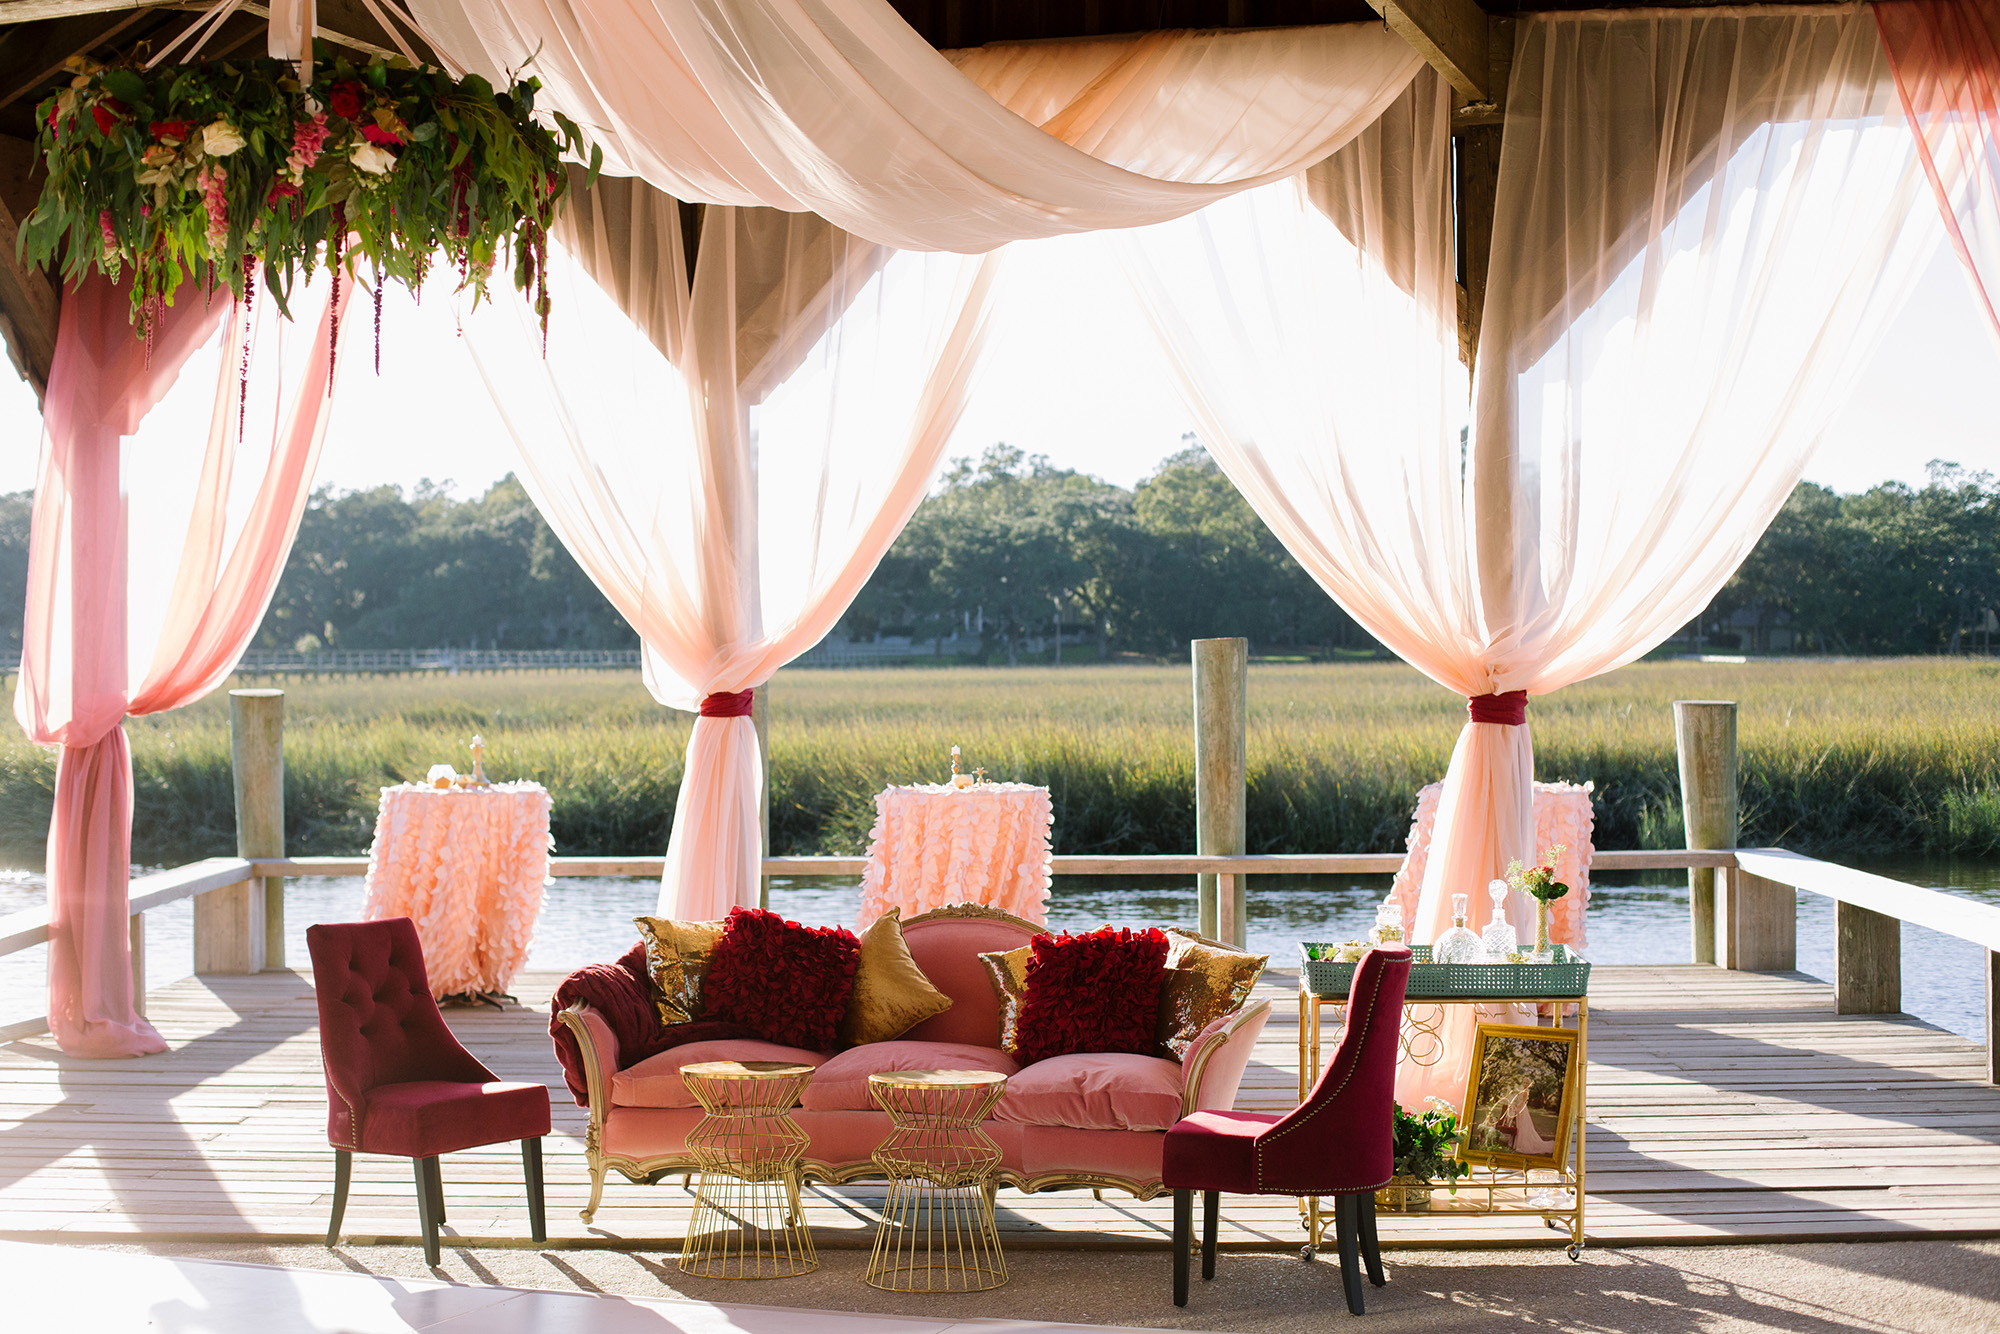 Dreamy Dock Overflowing with Romance